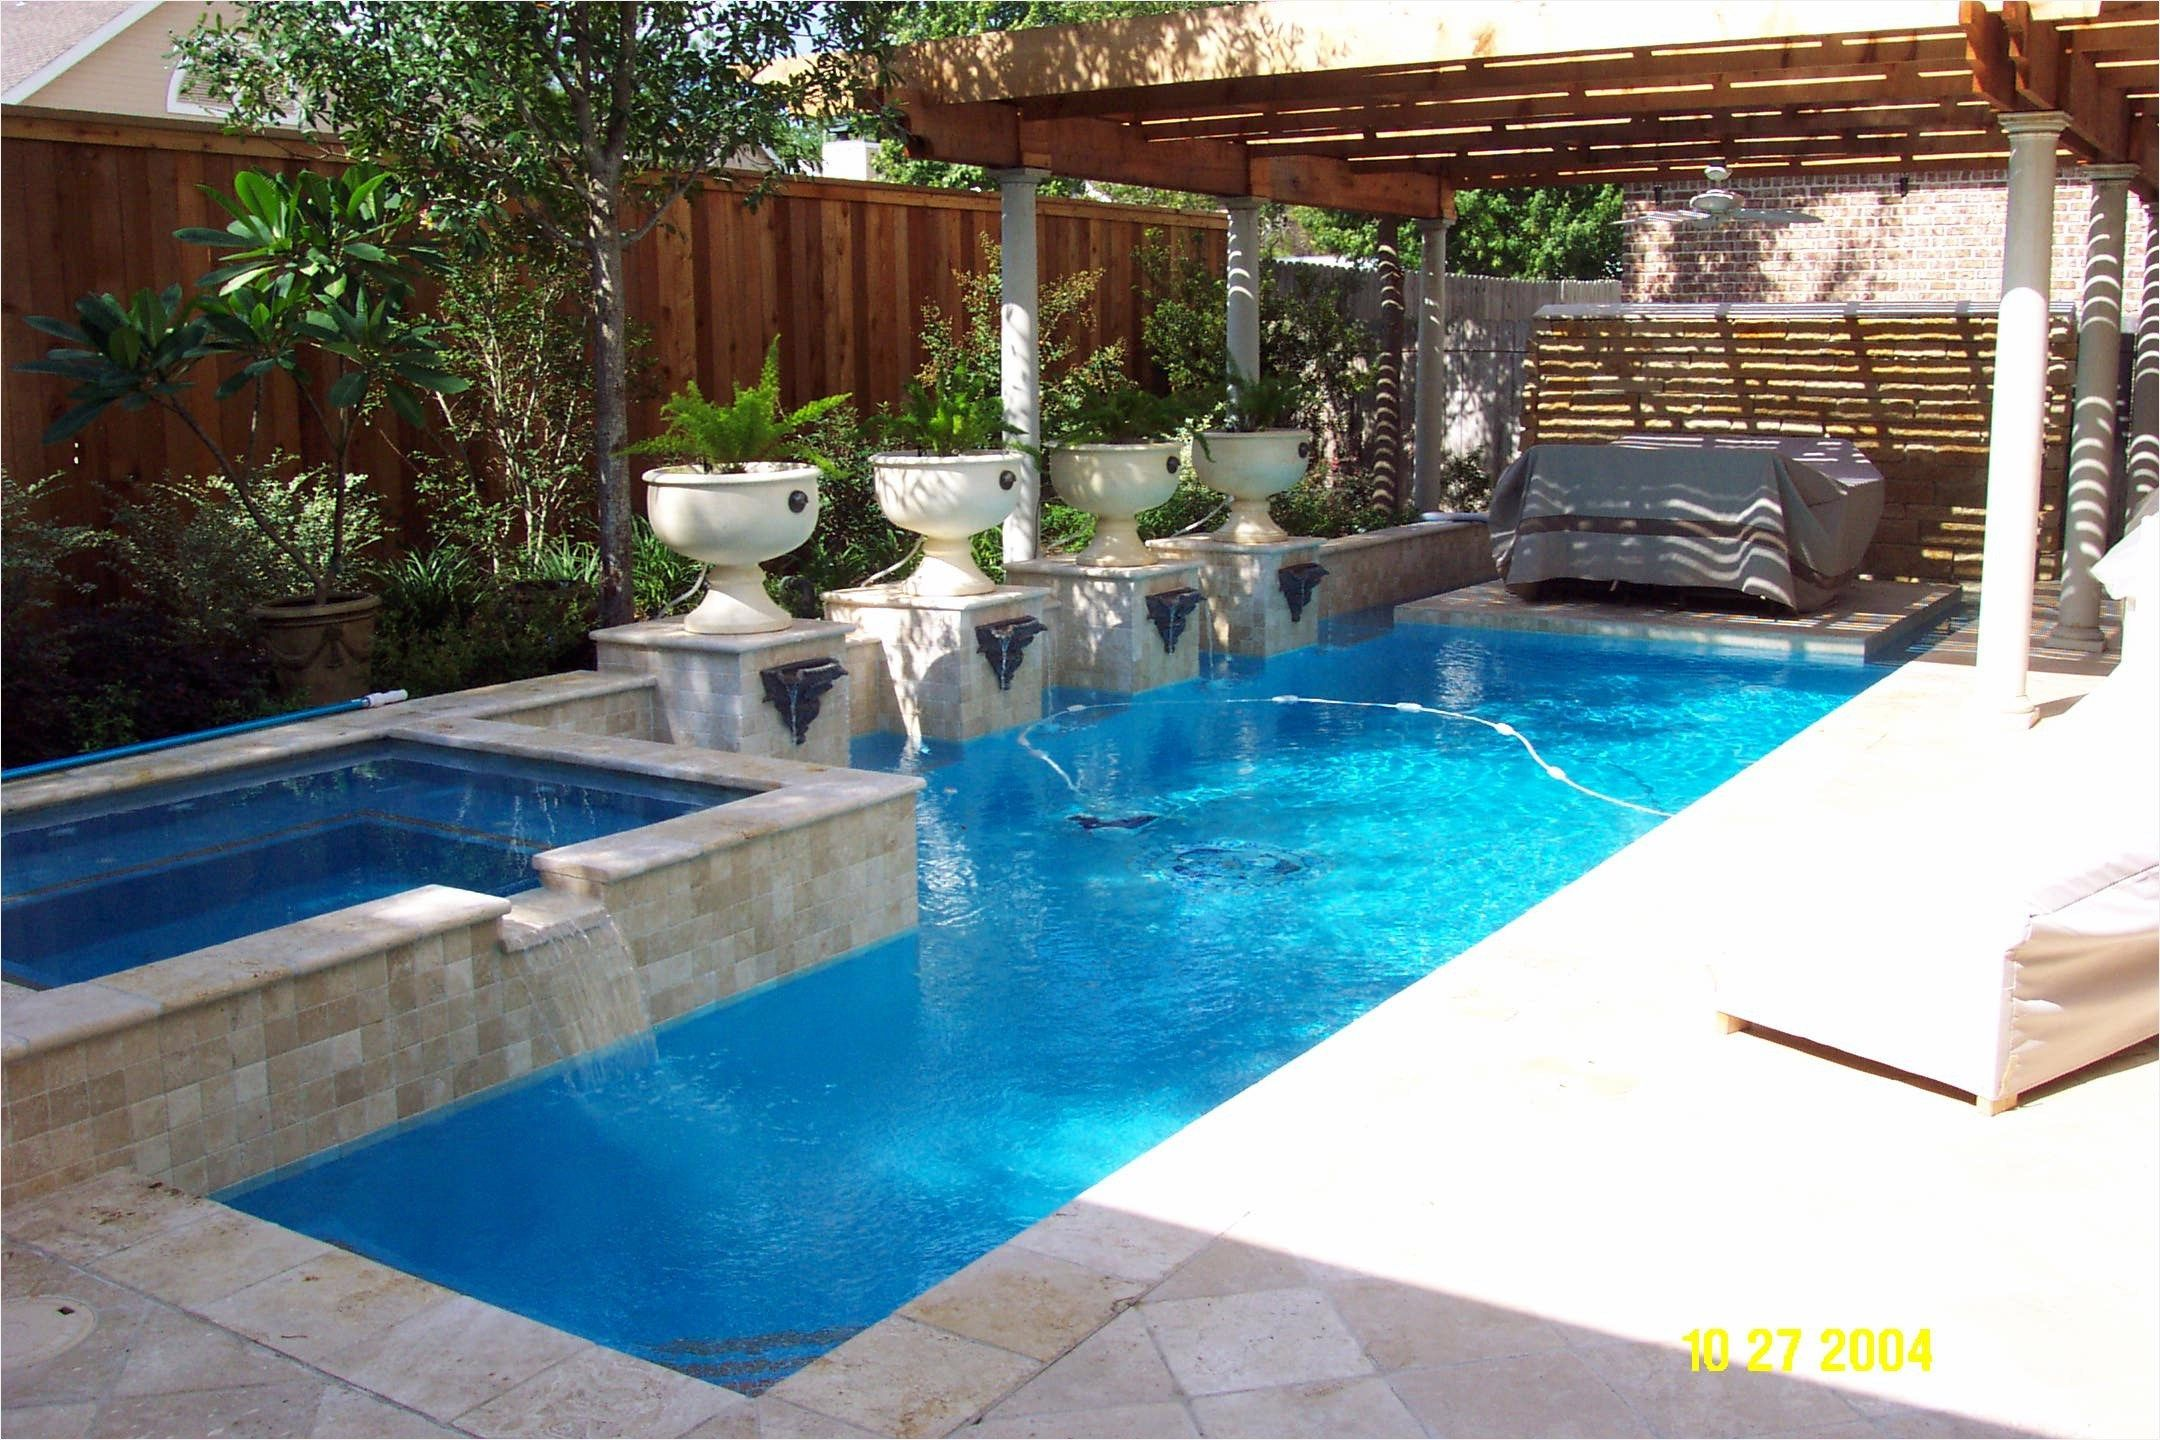 42 Amazing Ideas For Small Yards Pool 23 Besf Ideas